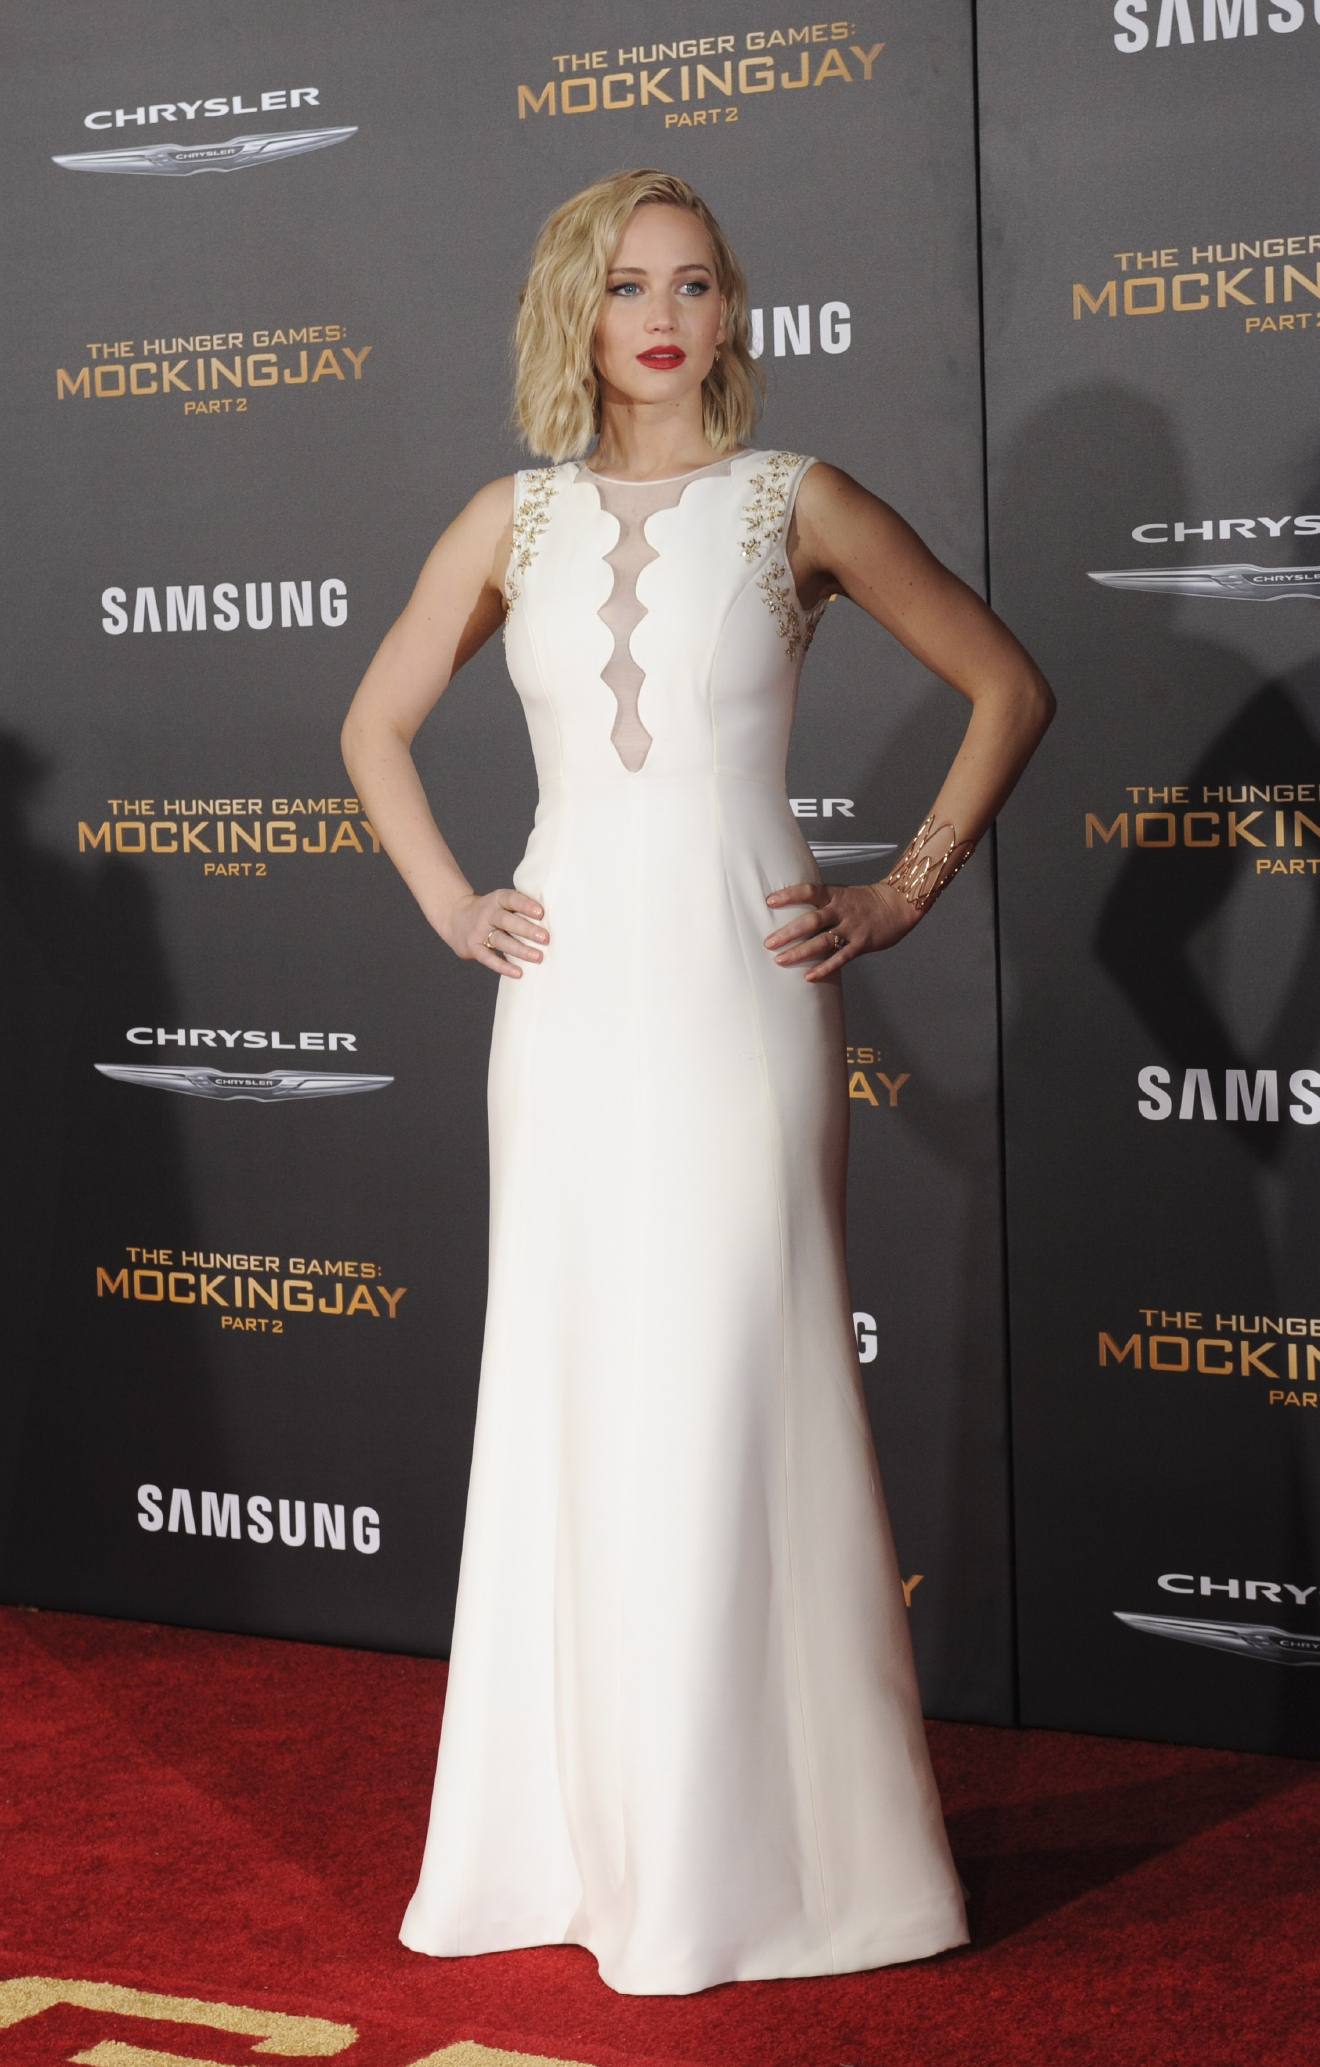 The Hunger Games Mockinngjay Part 2  Featuring: Jennifer Lawrence Where: Los Angeles, California, United States When: 17 Nov 2015 Credit: Apega/WENN.com